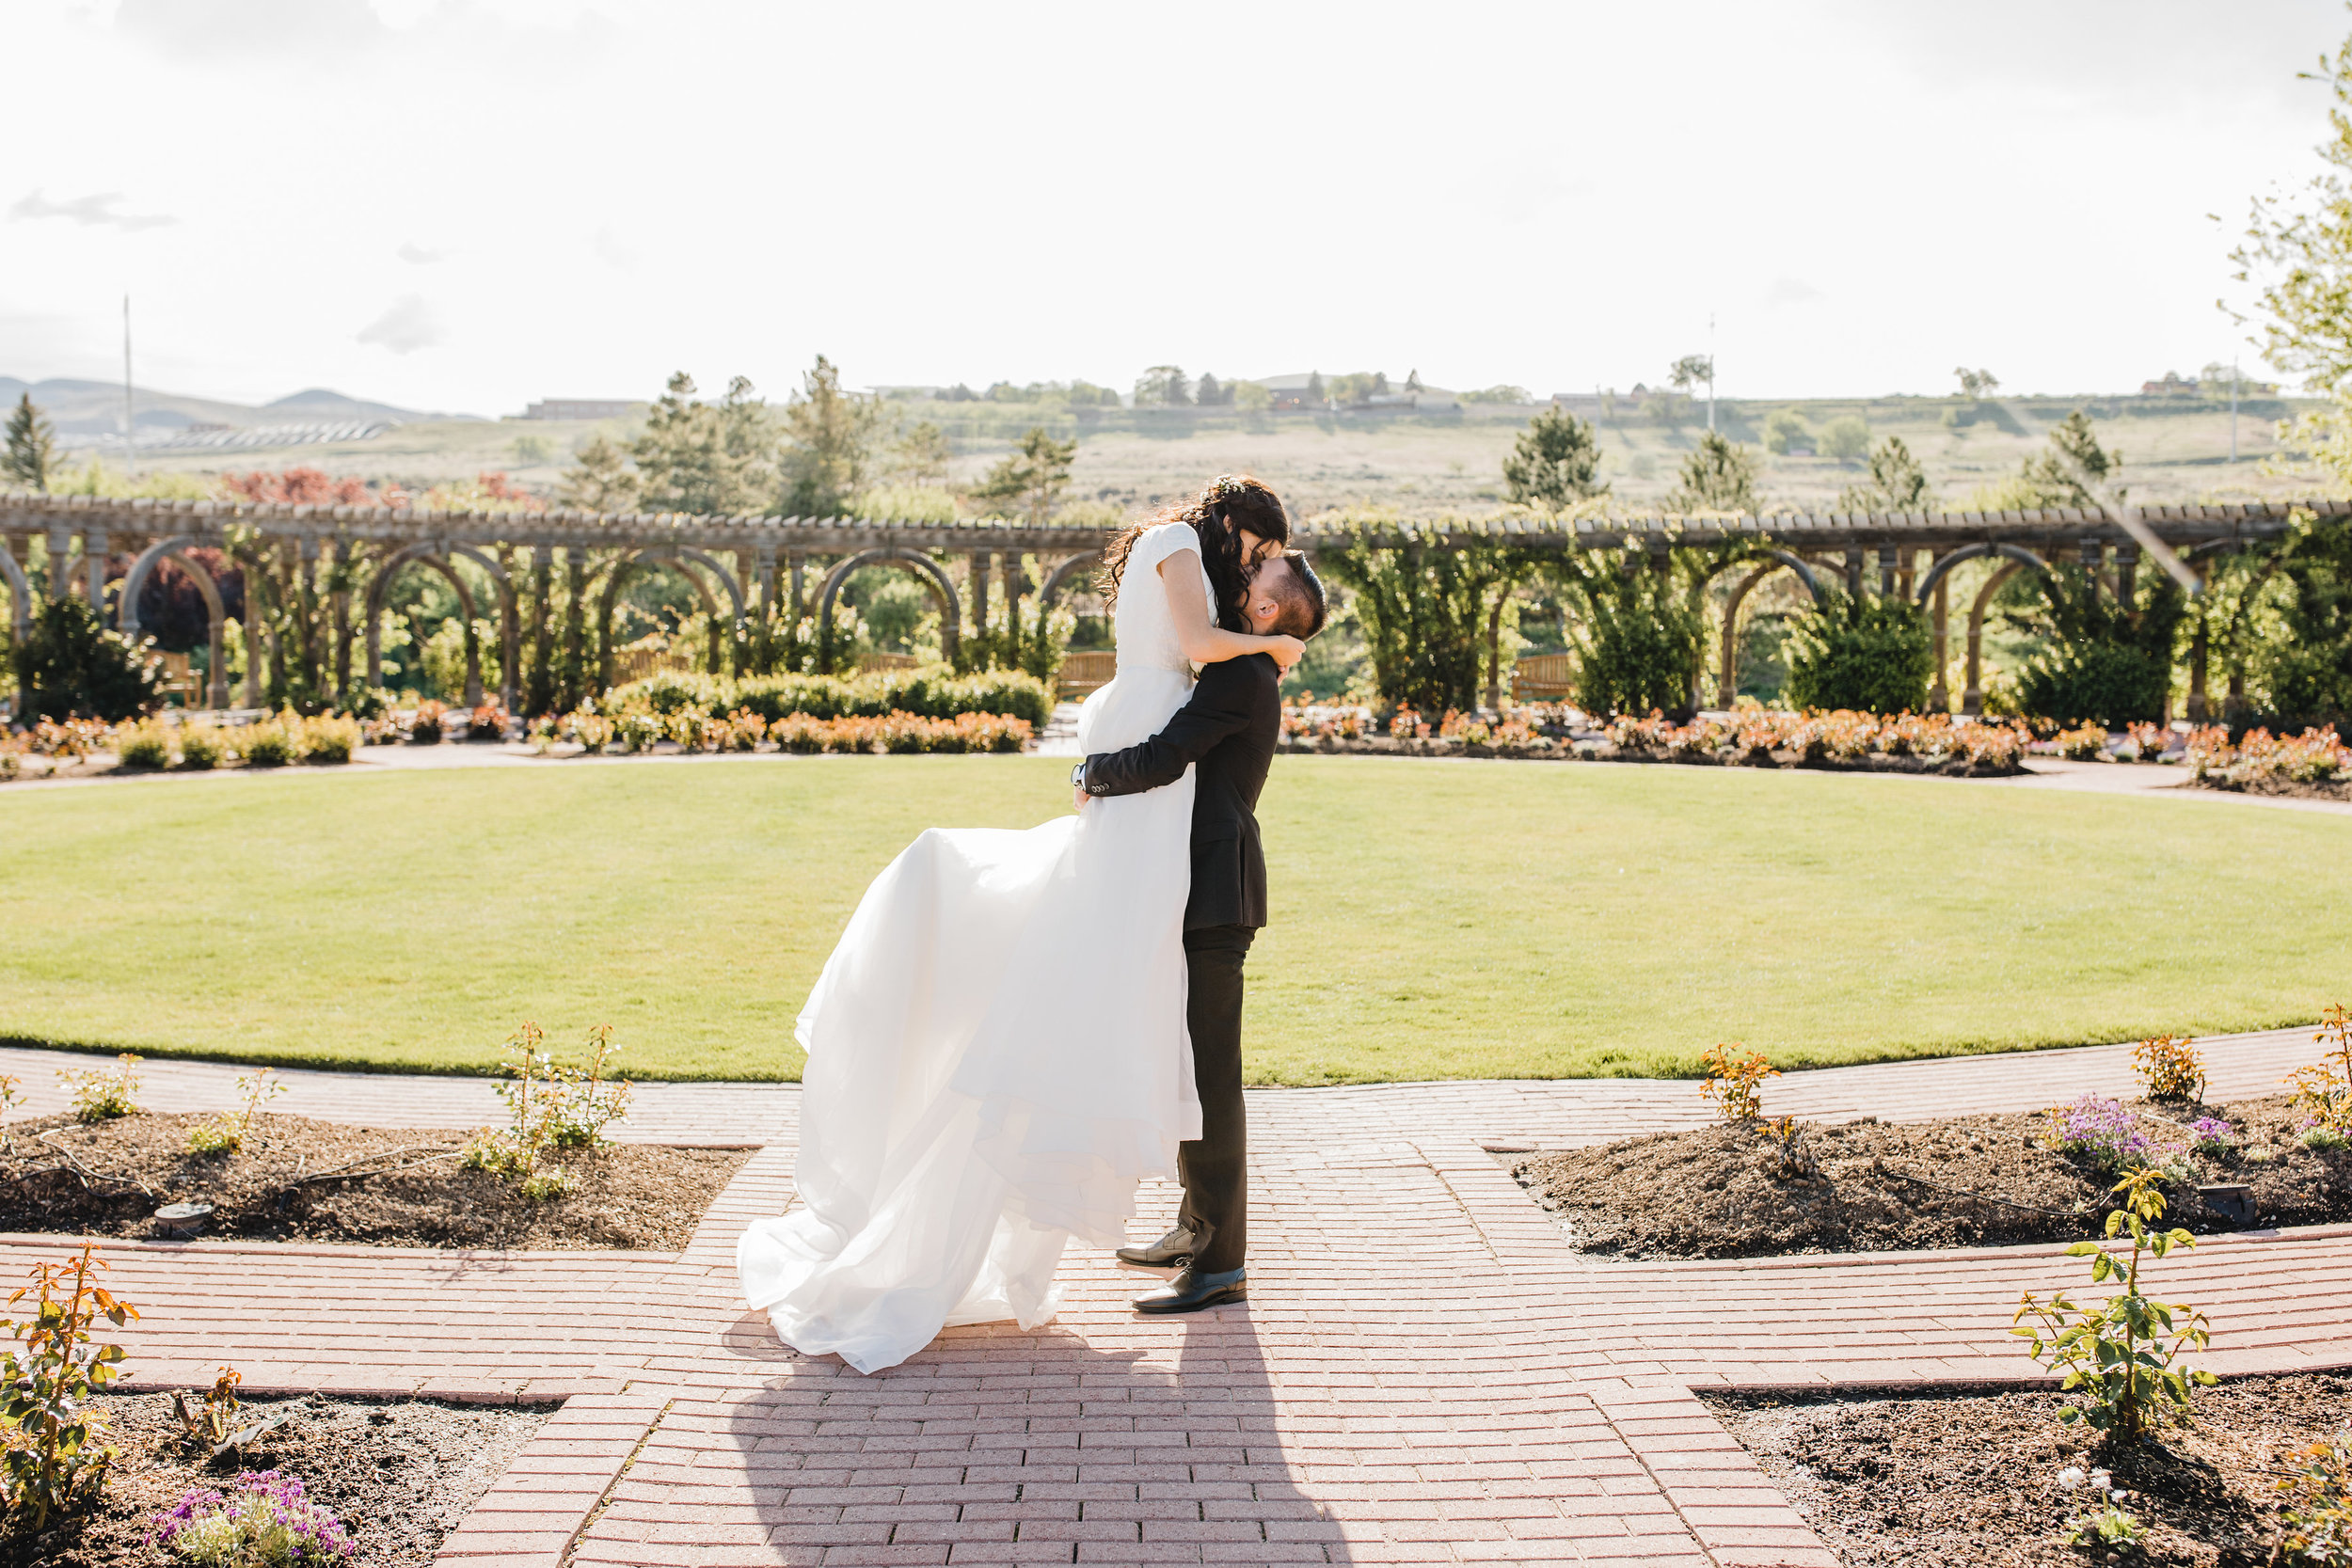 best wedding photographer in westminister colorado wedding arches garden photos kissing popped foot